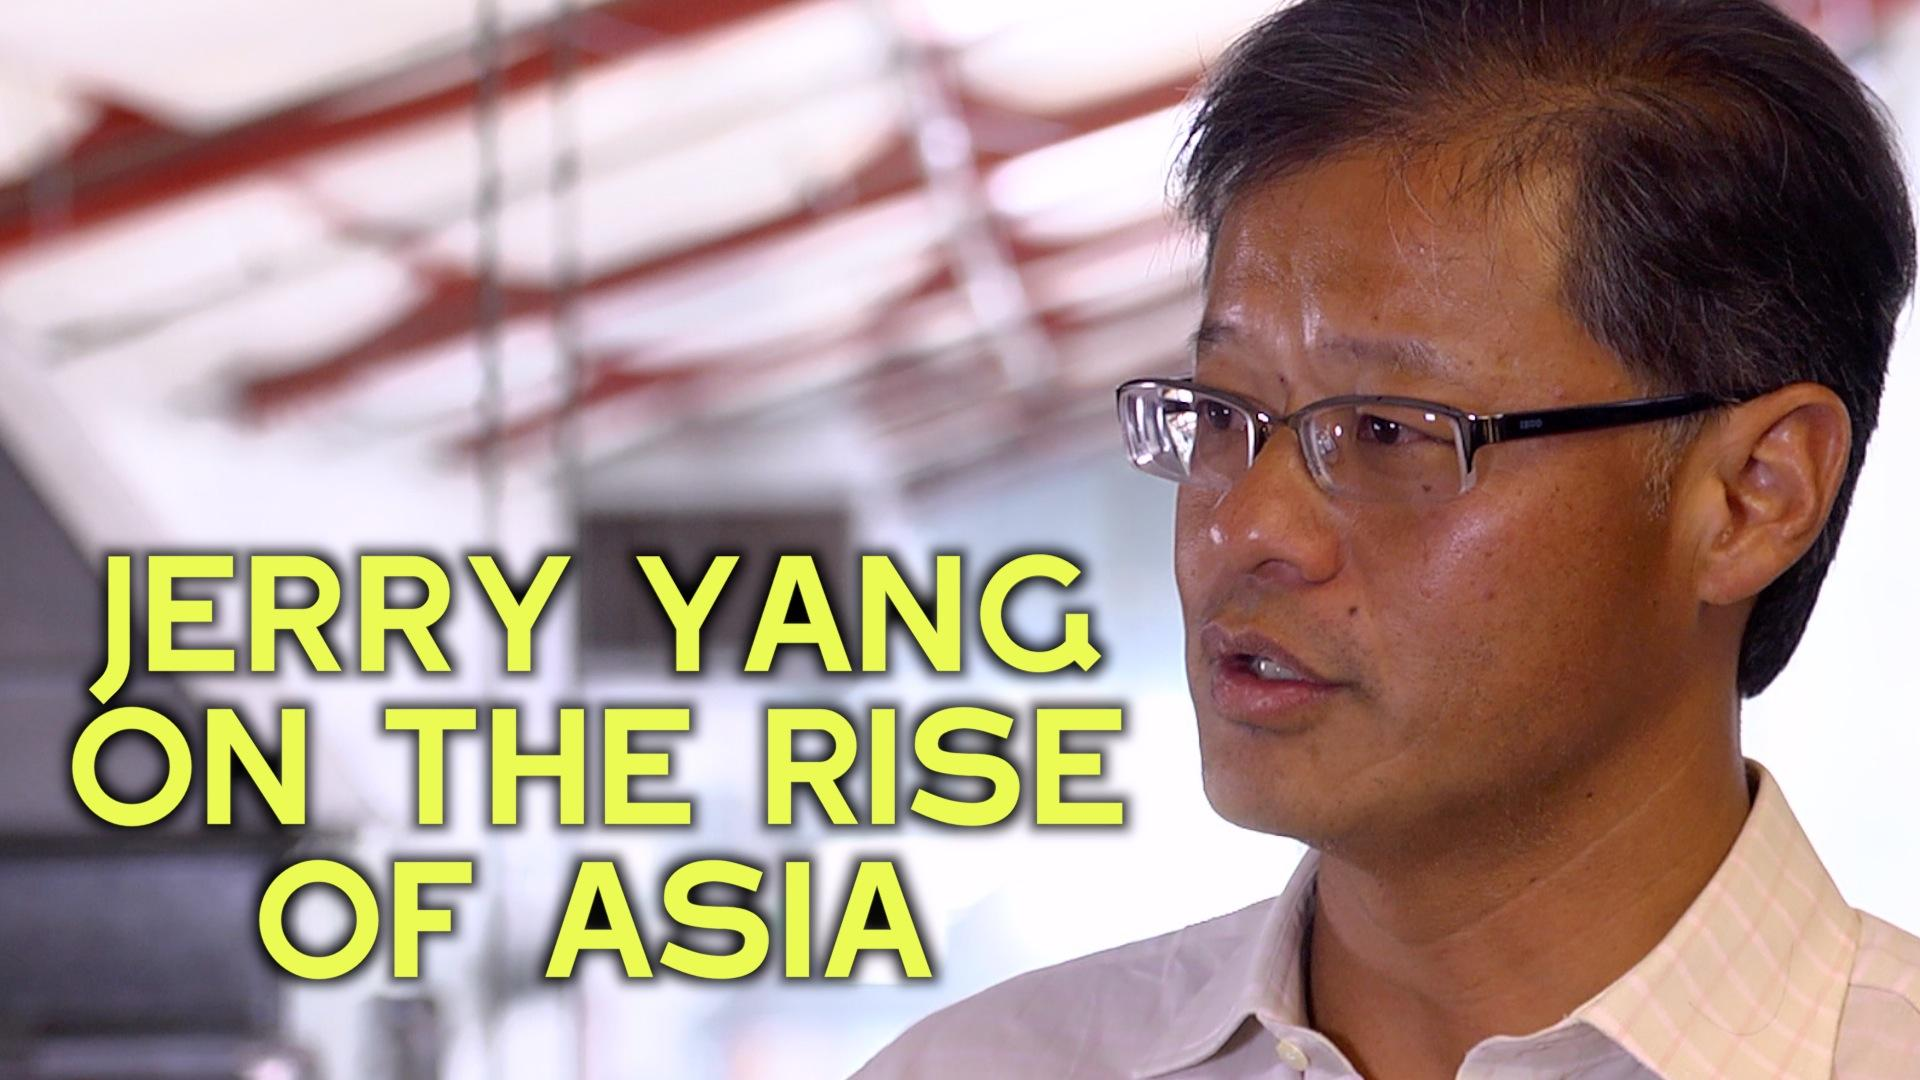 Jerry Yang On the Rise of Asia